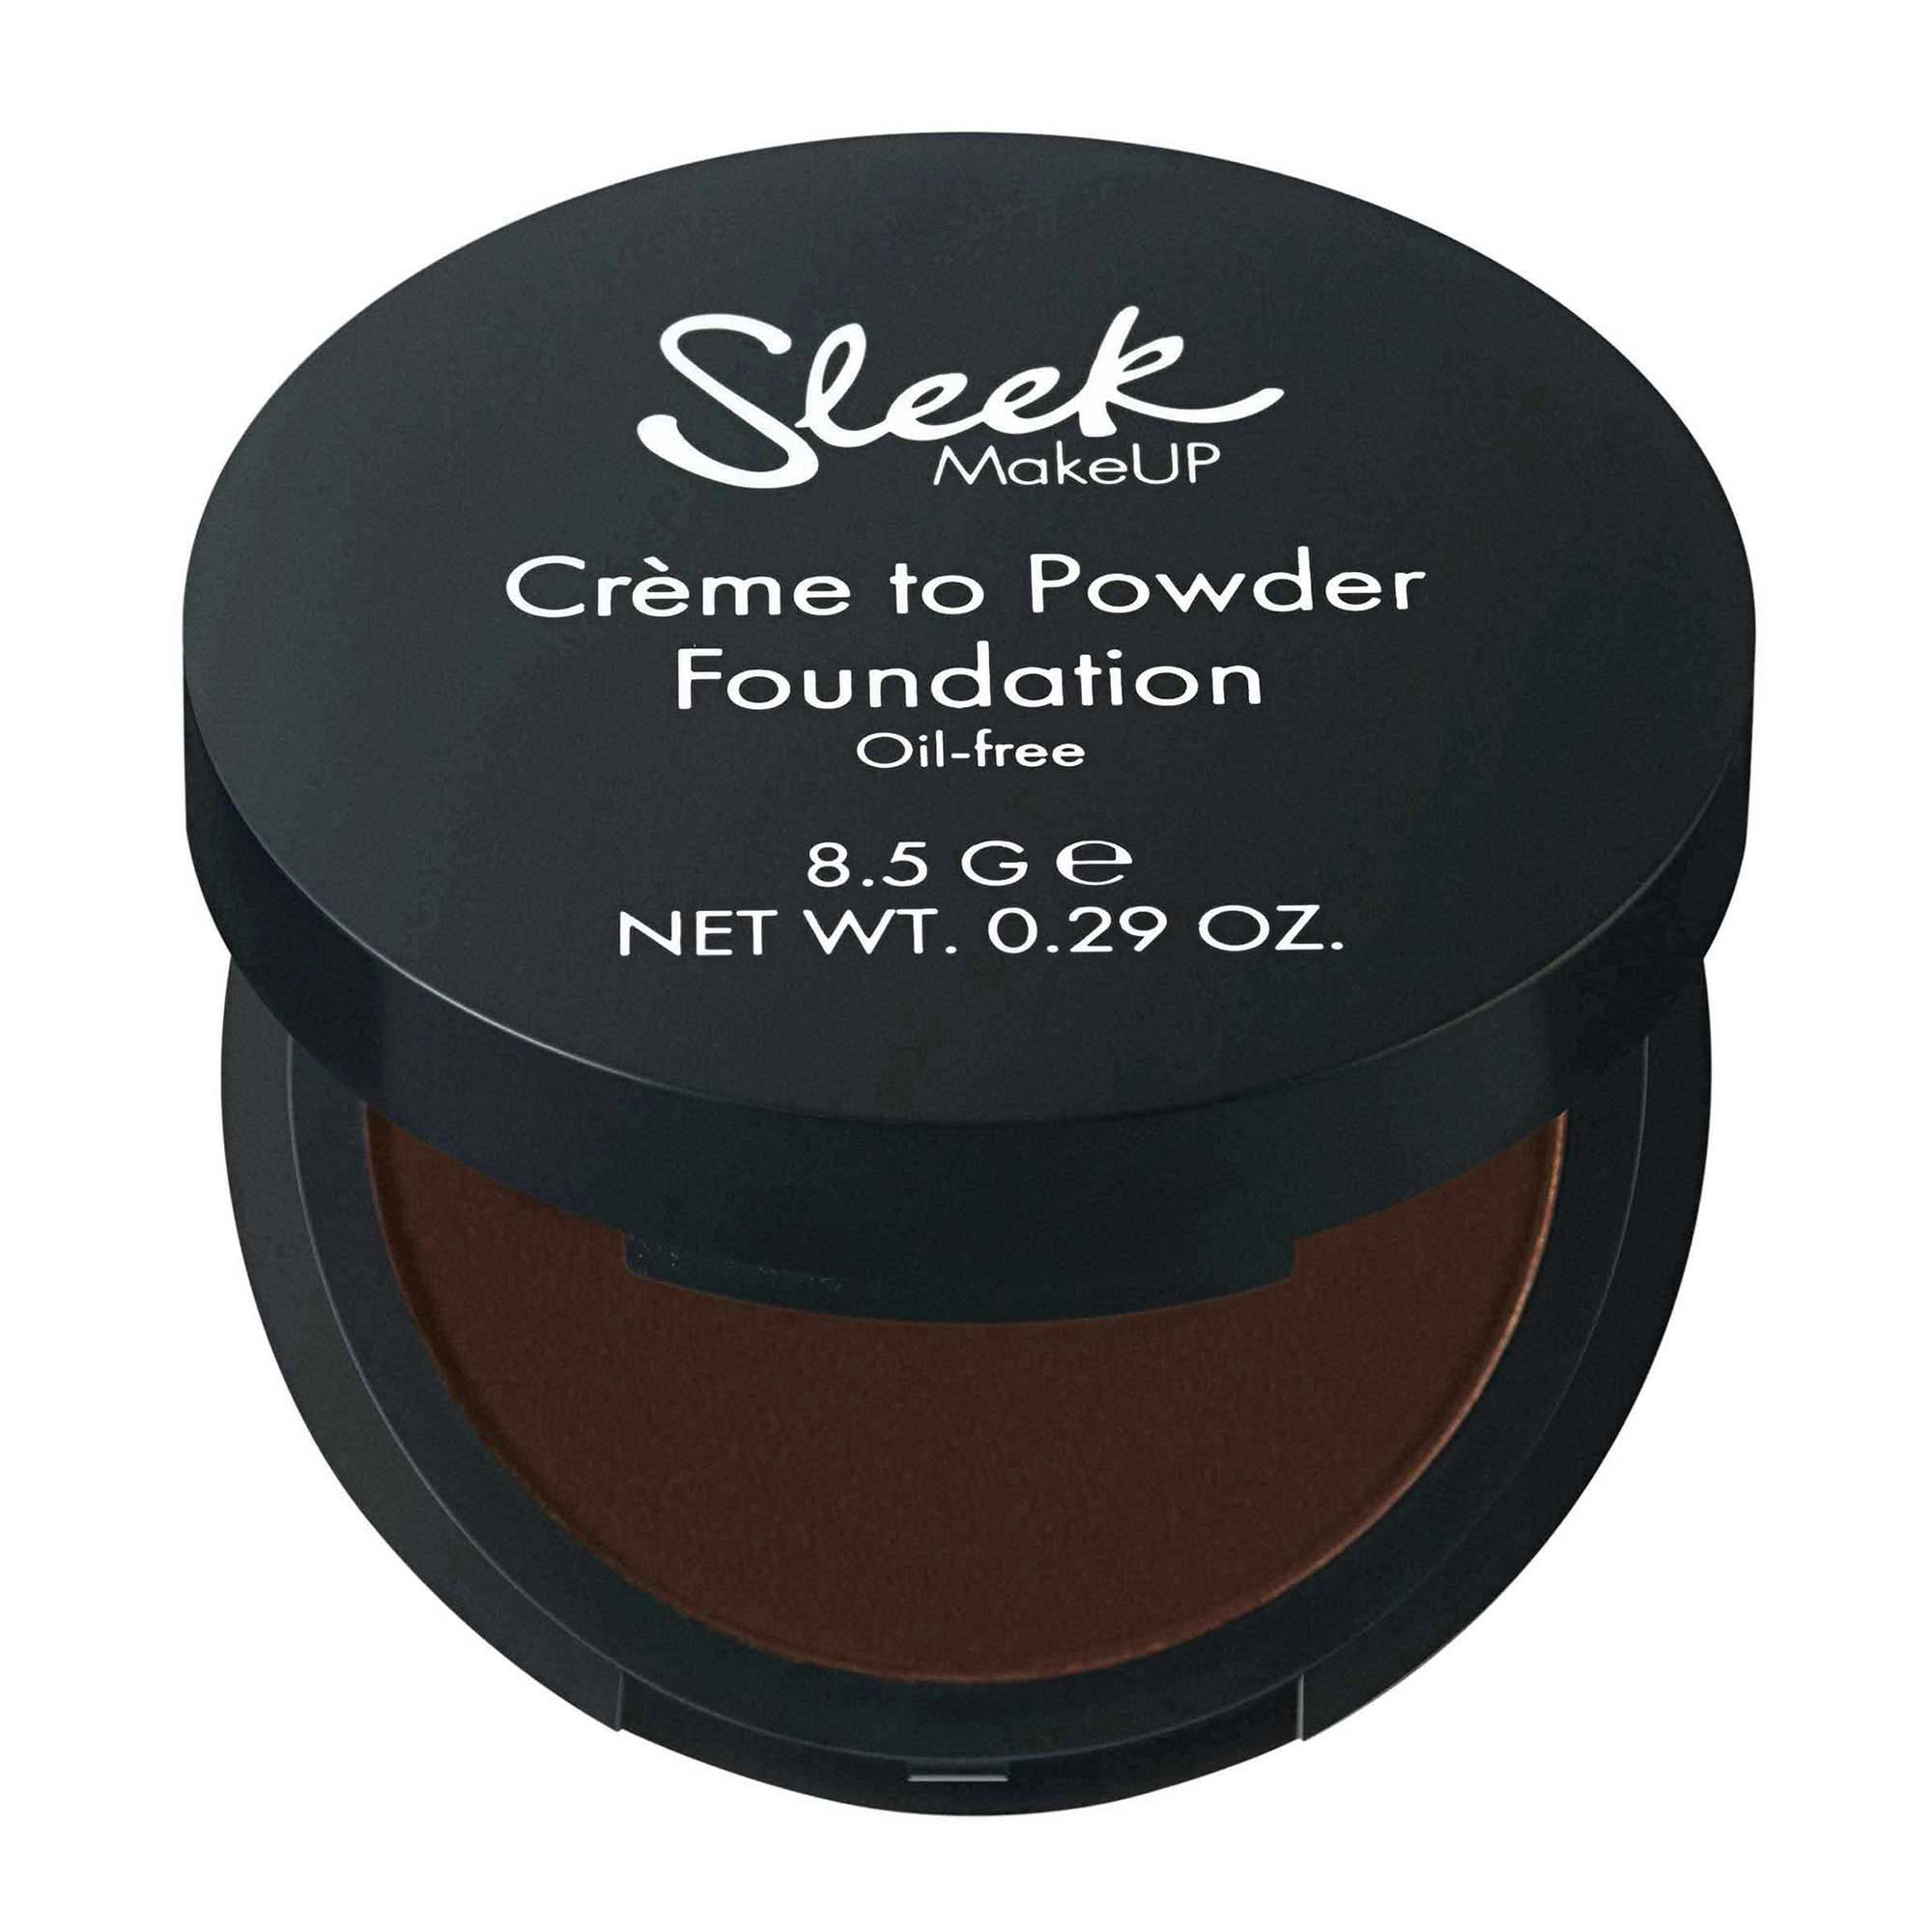 Creme to Powder 23 Sleek Makeup